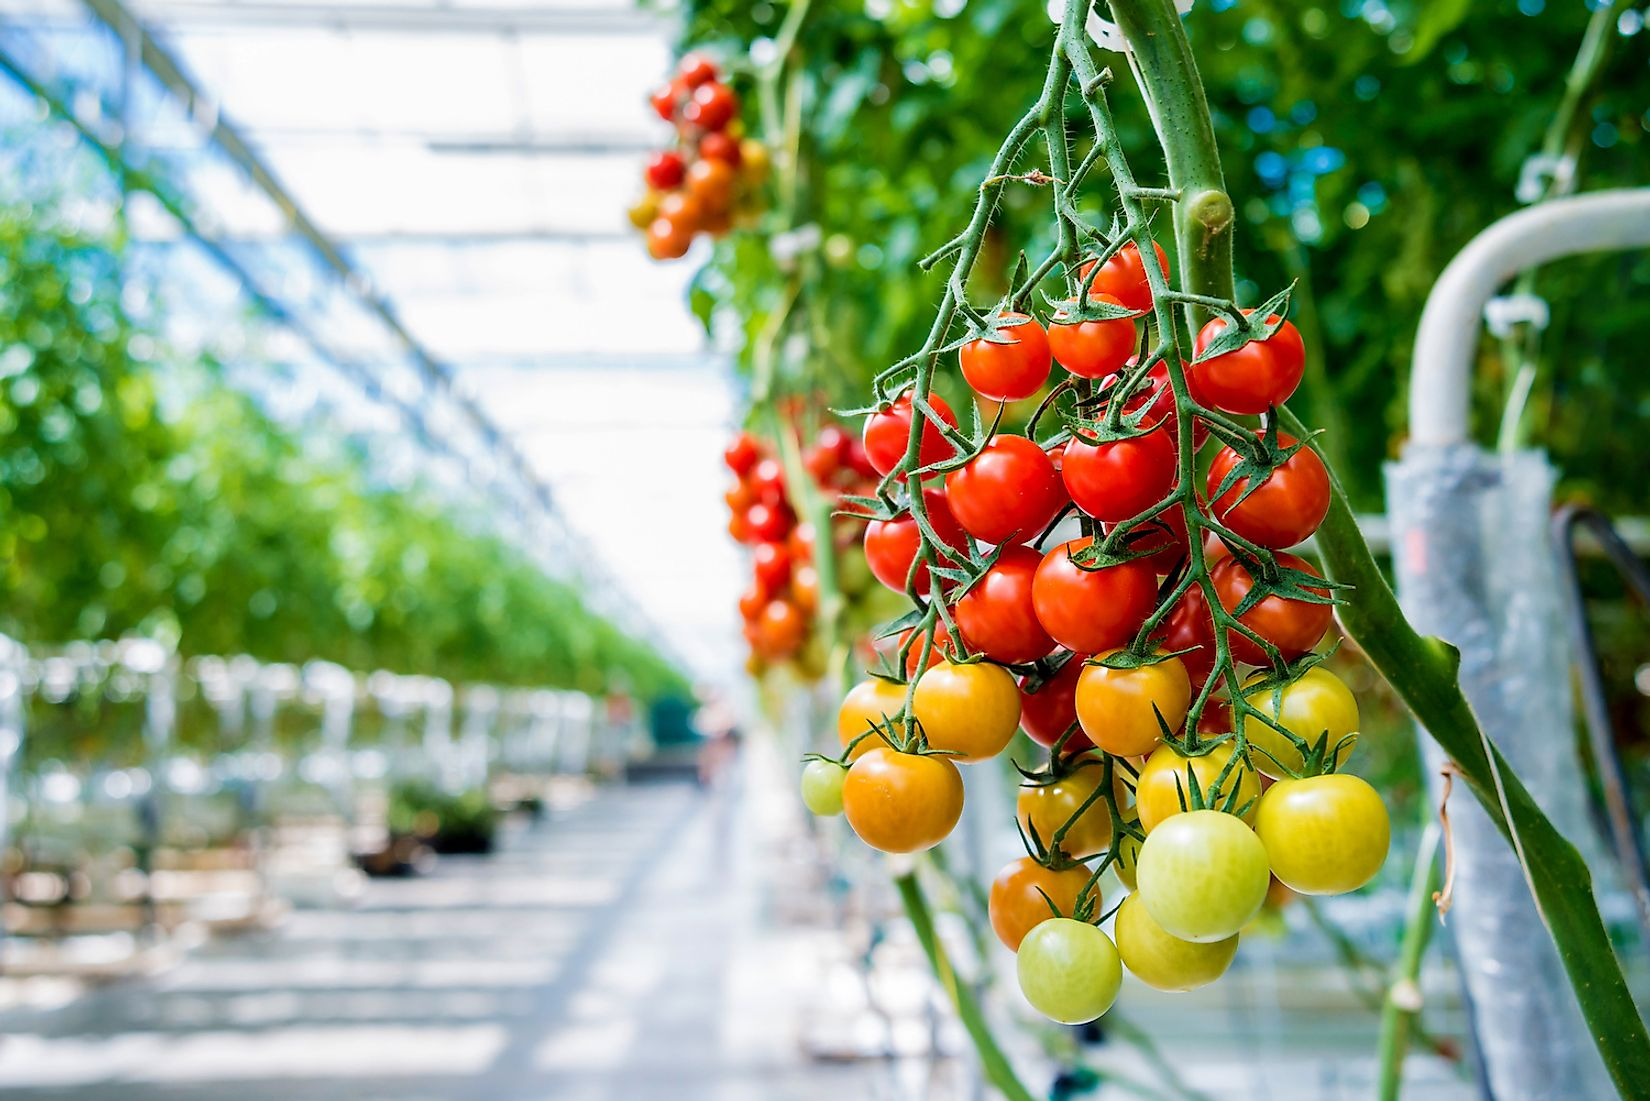 Tomatoes grown in a greenhouse. Image credit: Roman Zaiets/Shutterstock.com